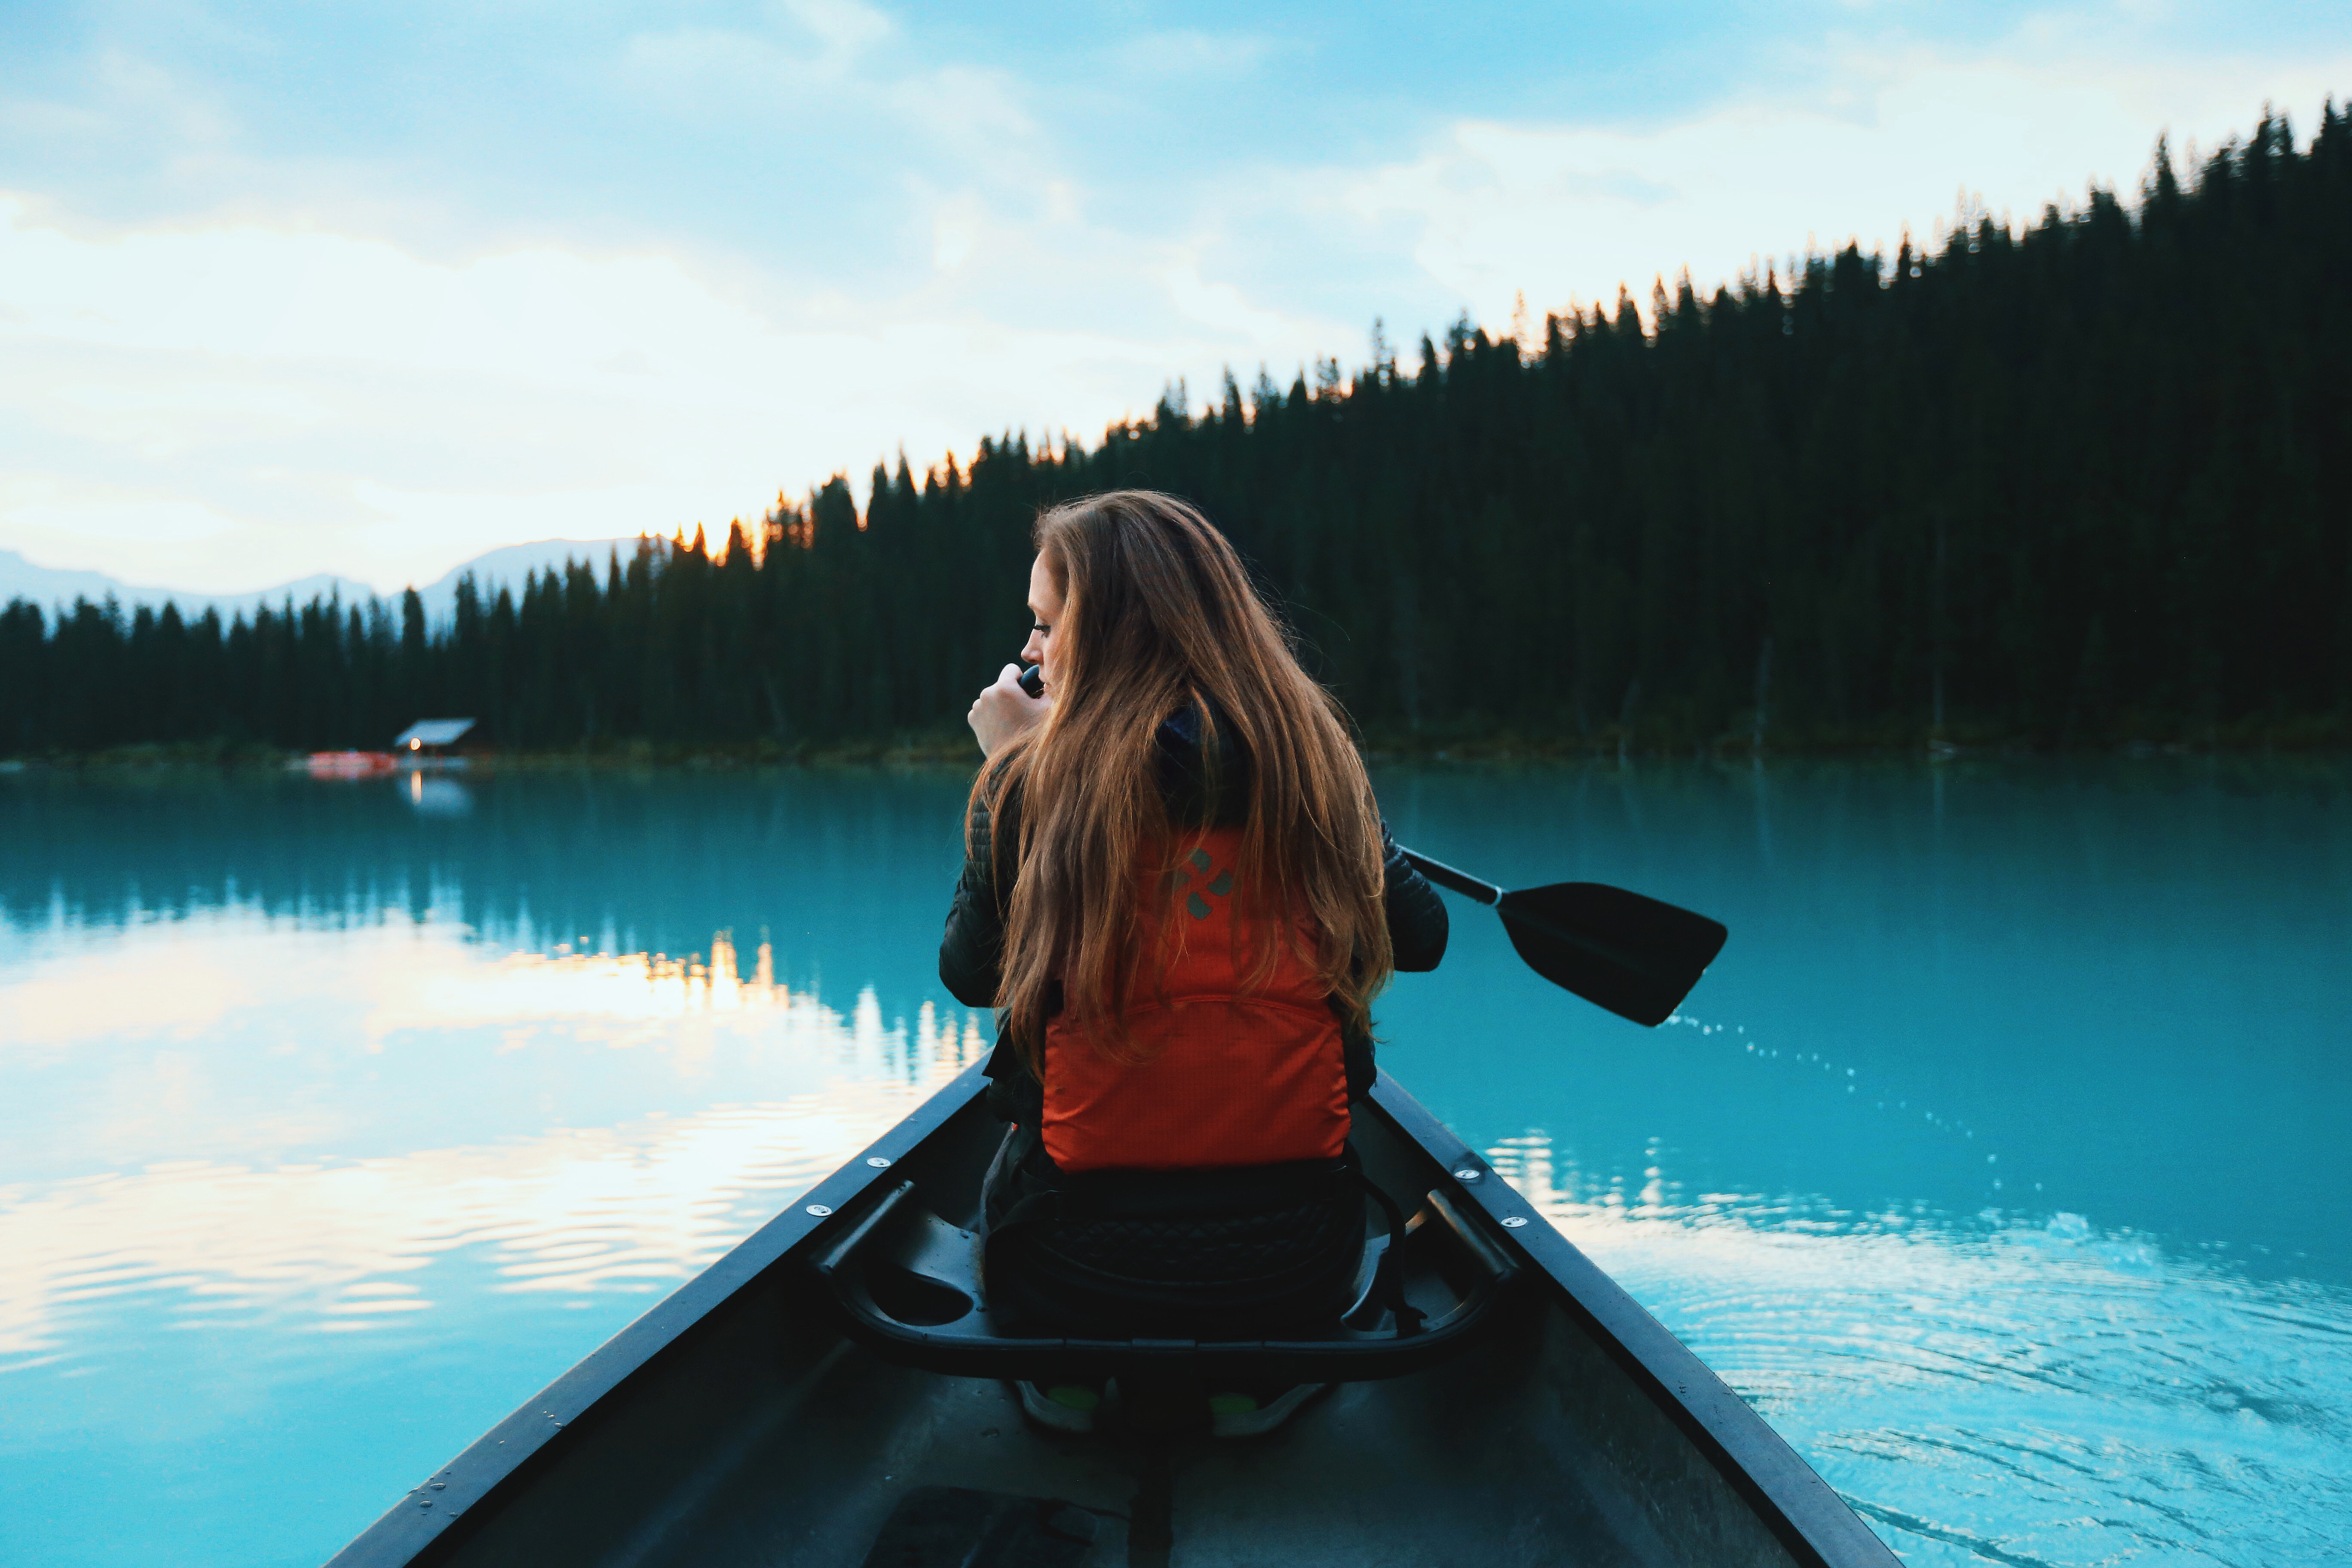 blonde haired woman riding on boat